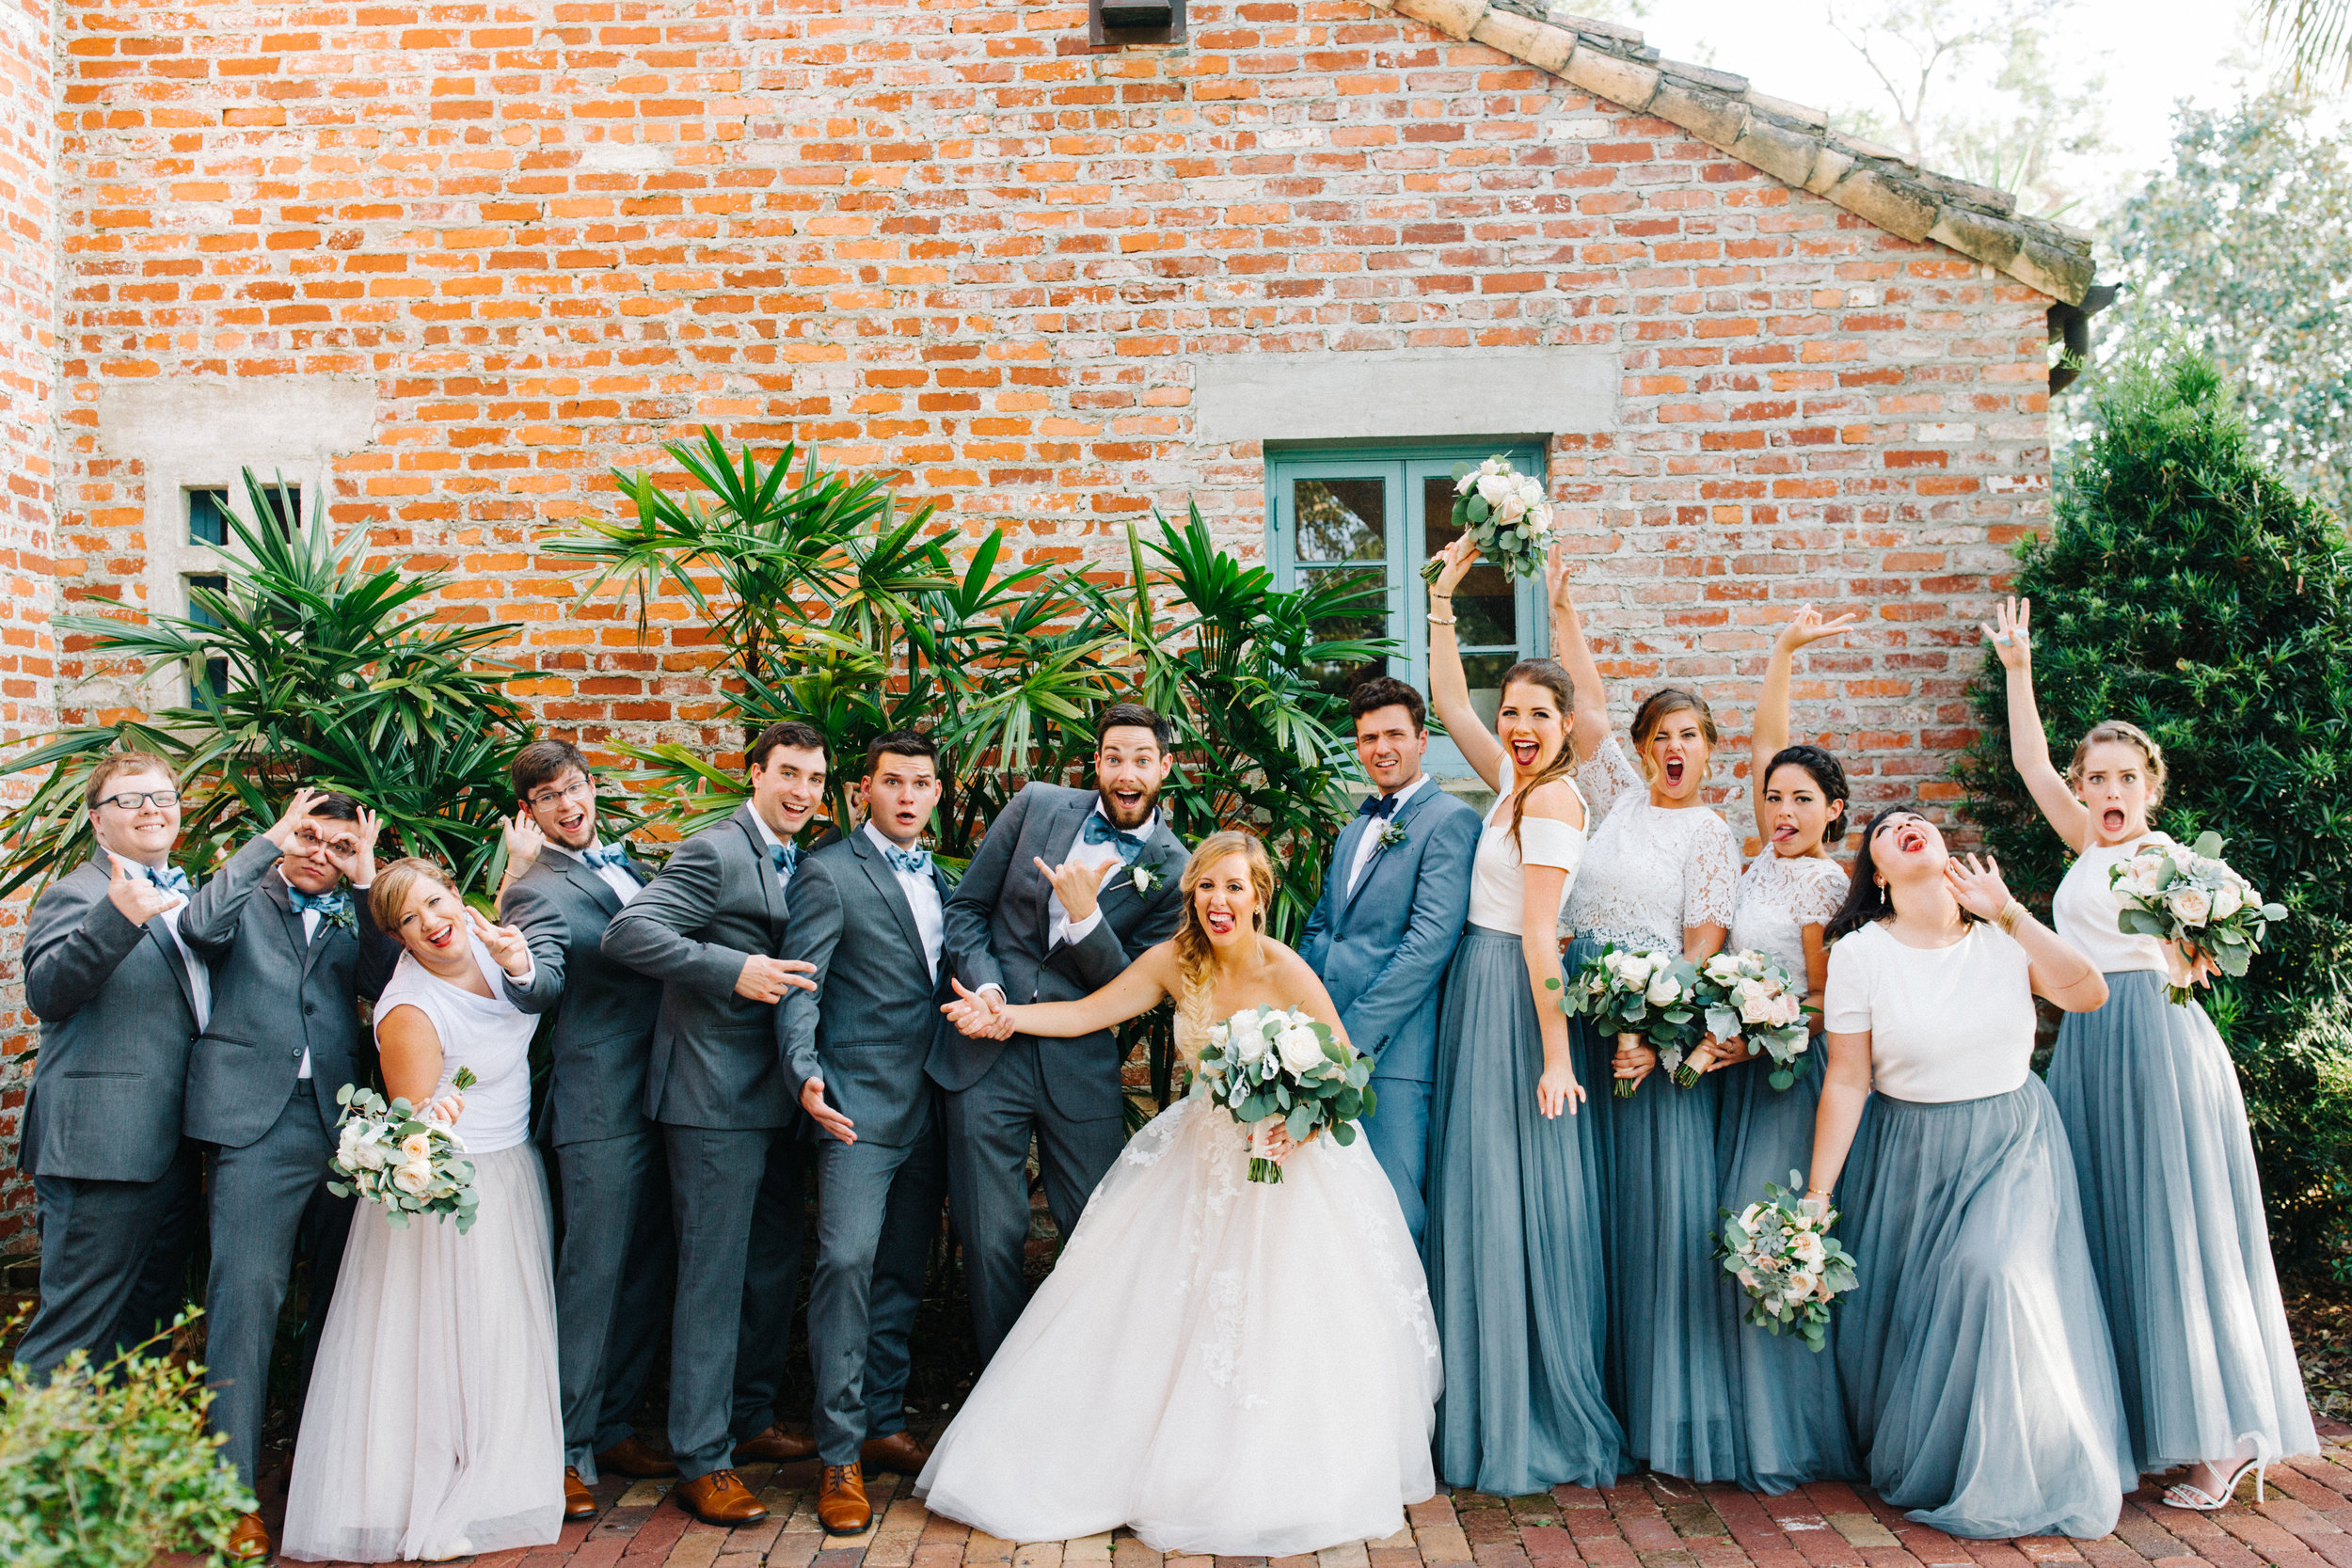 Orlando-Wedding-Photographer_Wedding-at-Casa-Feliz_Kaylin-and-Evan_Orlando-FL0695.jpg